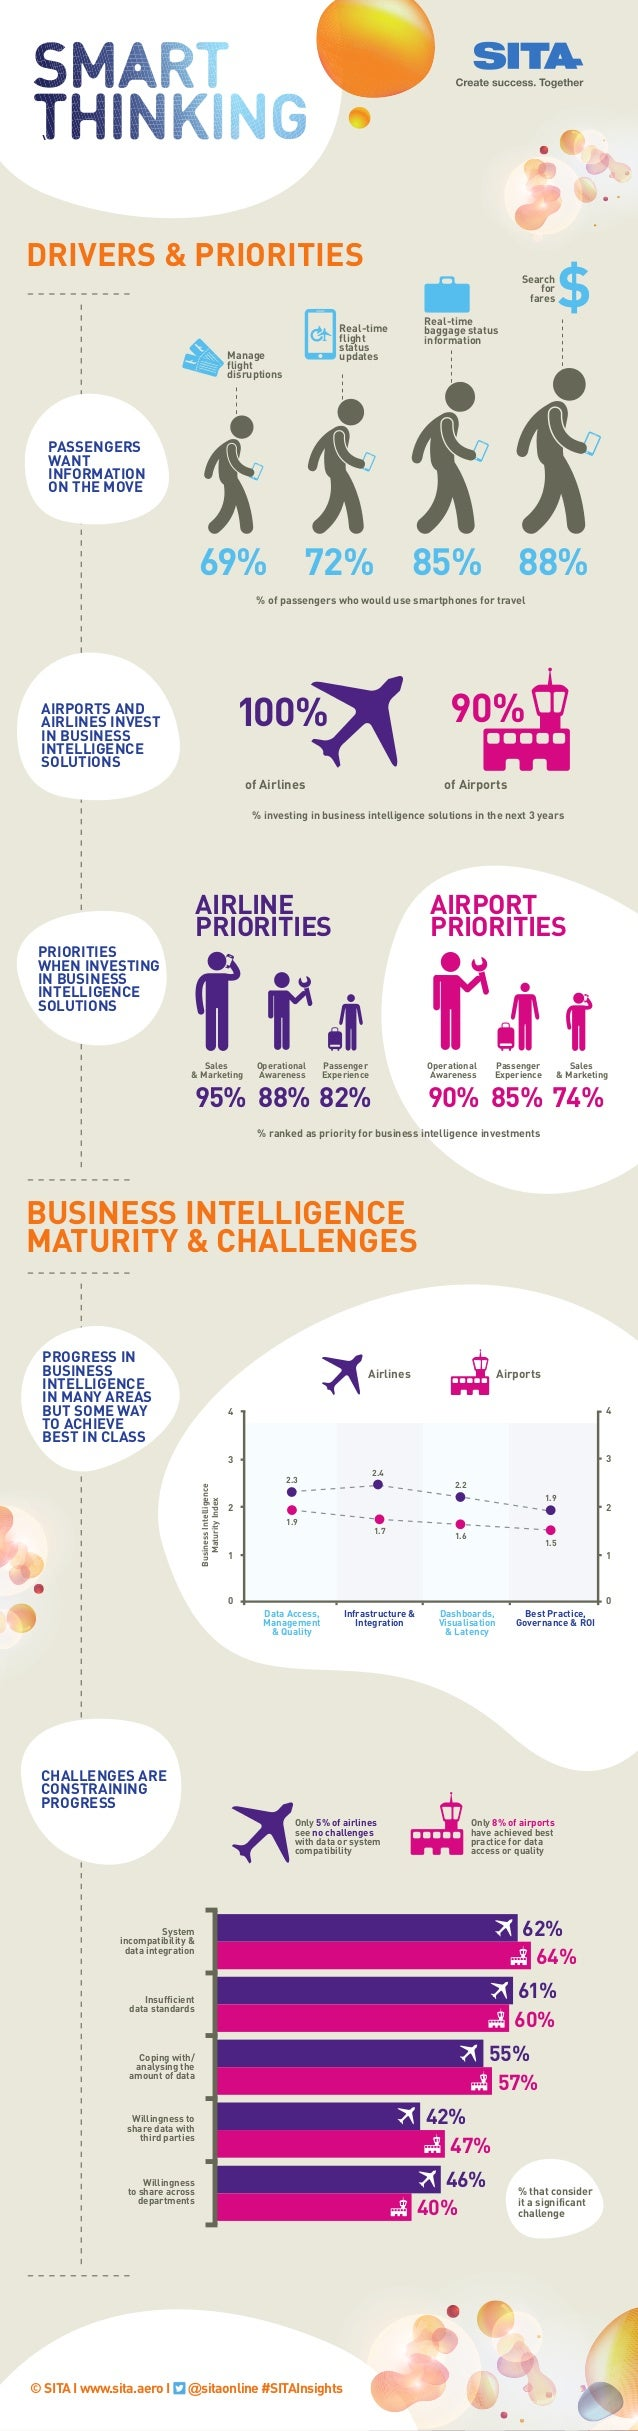 Smart Thining - business intelligence at airports and airlines - infographic